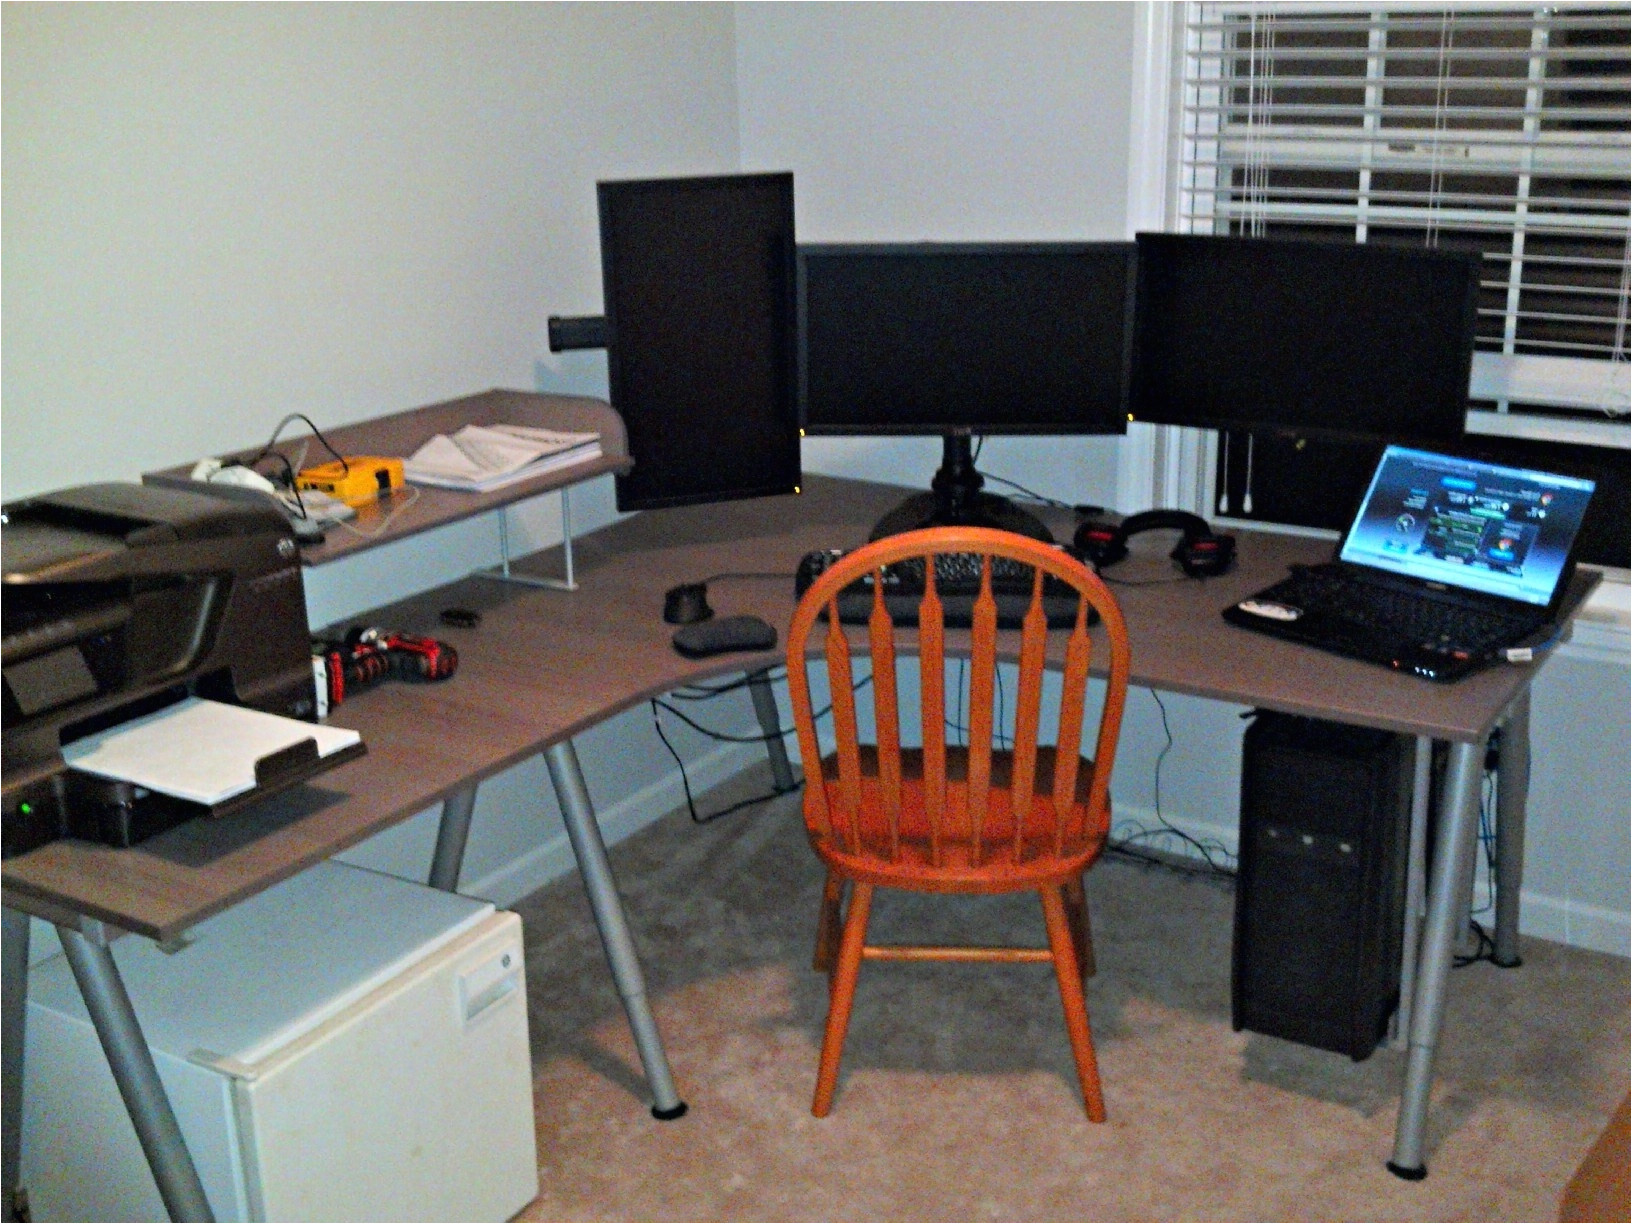 widely used is the ikea galant the go to desk of a gamer i